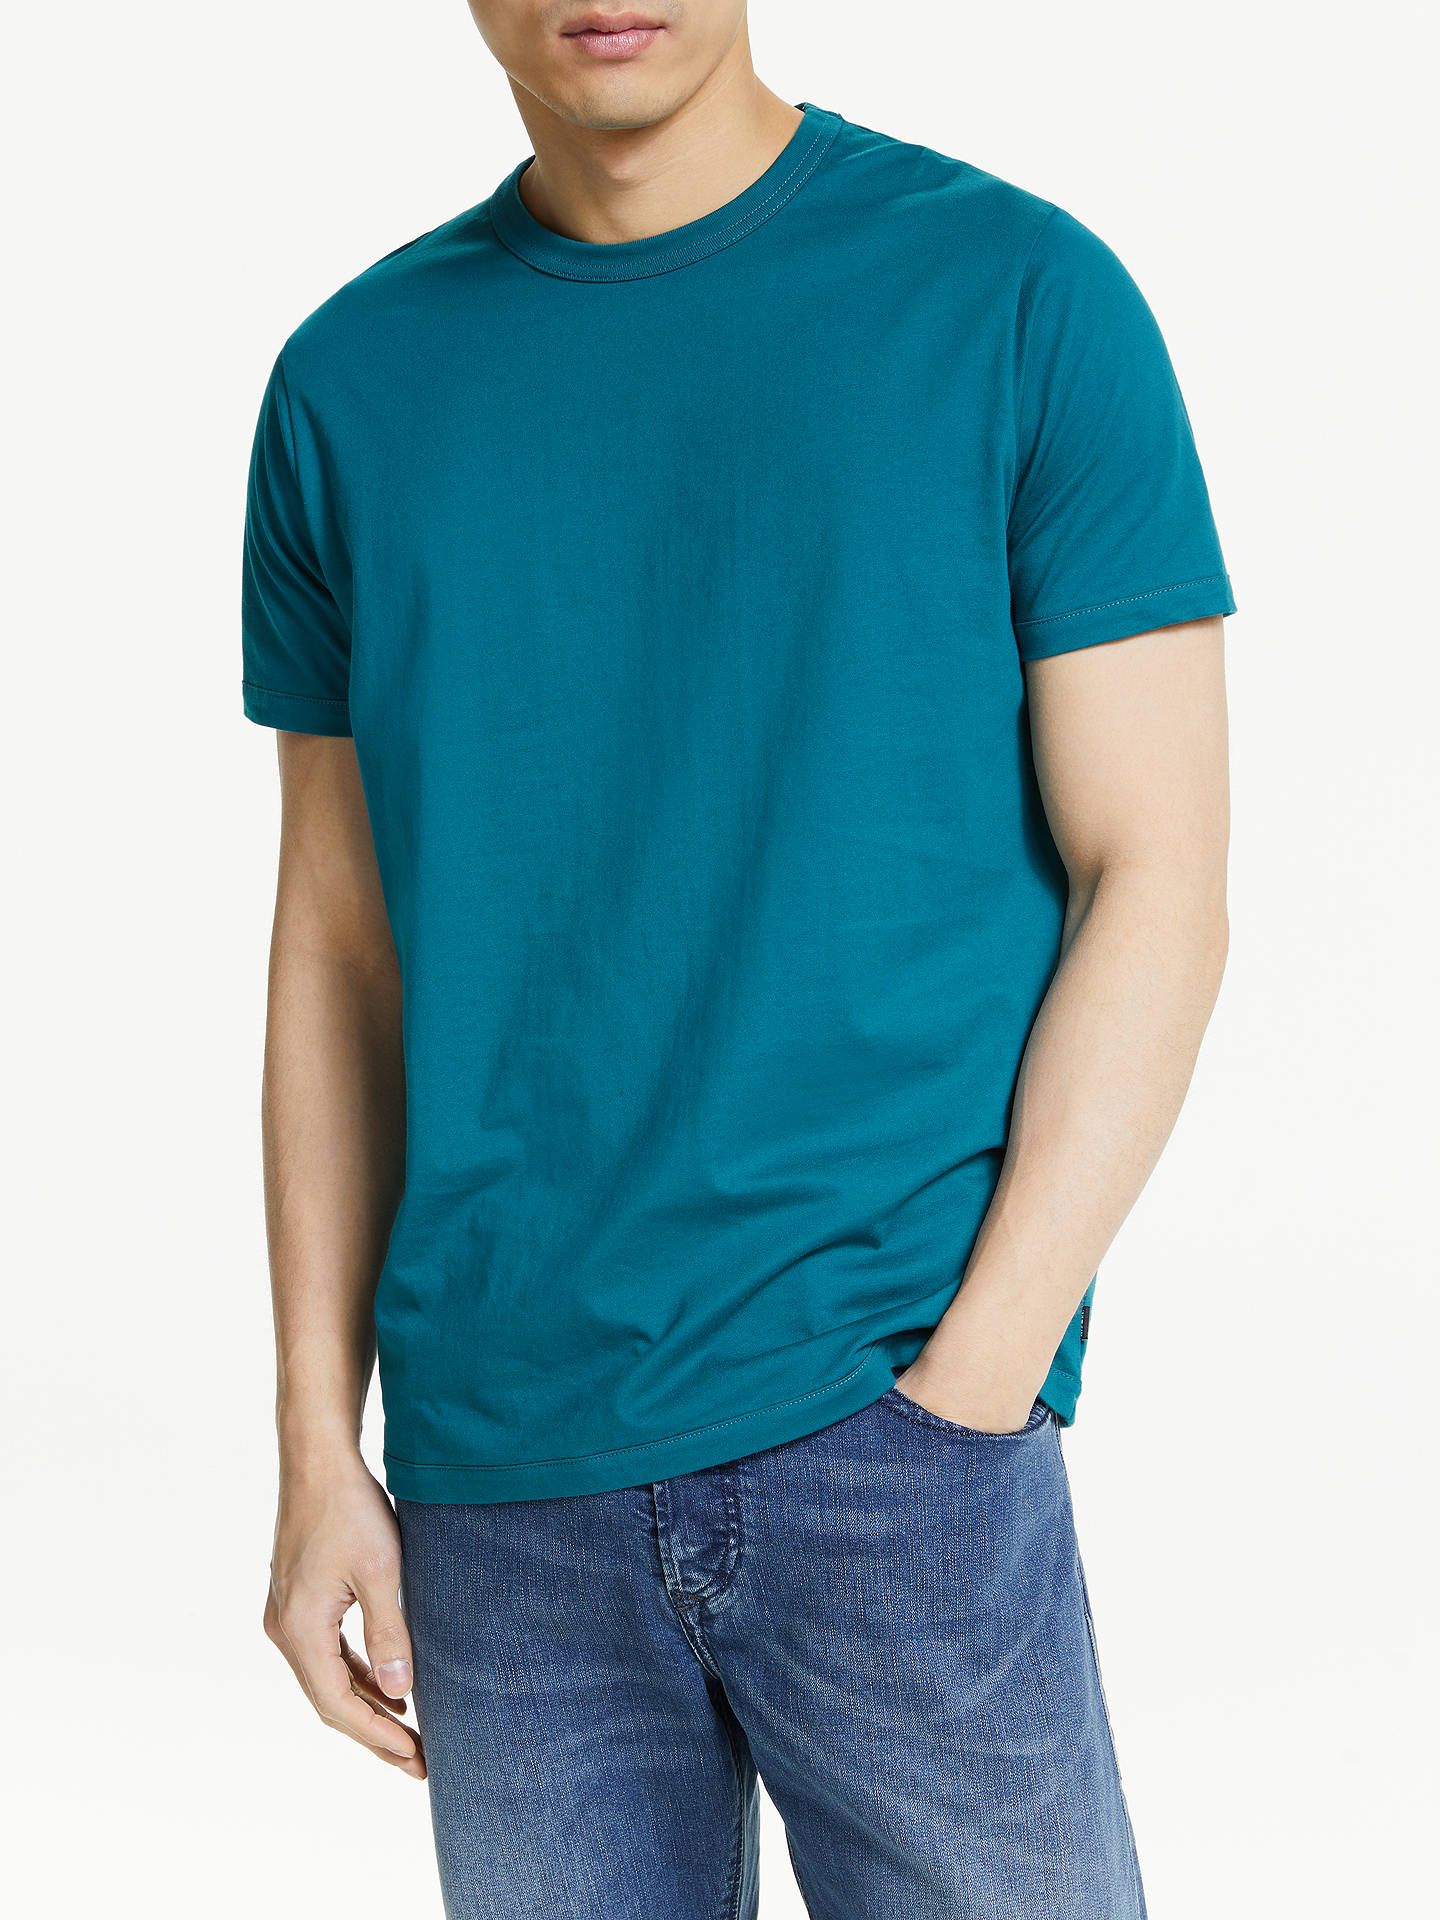 BuyDiesel Diamantik T-Shirt, Teal, L Online at johnlewis.com